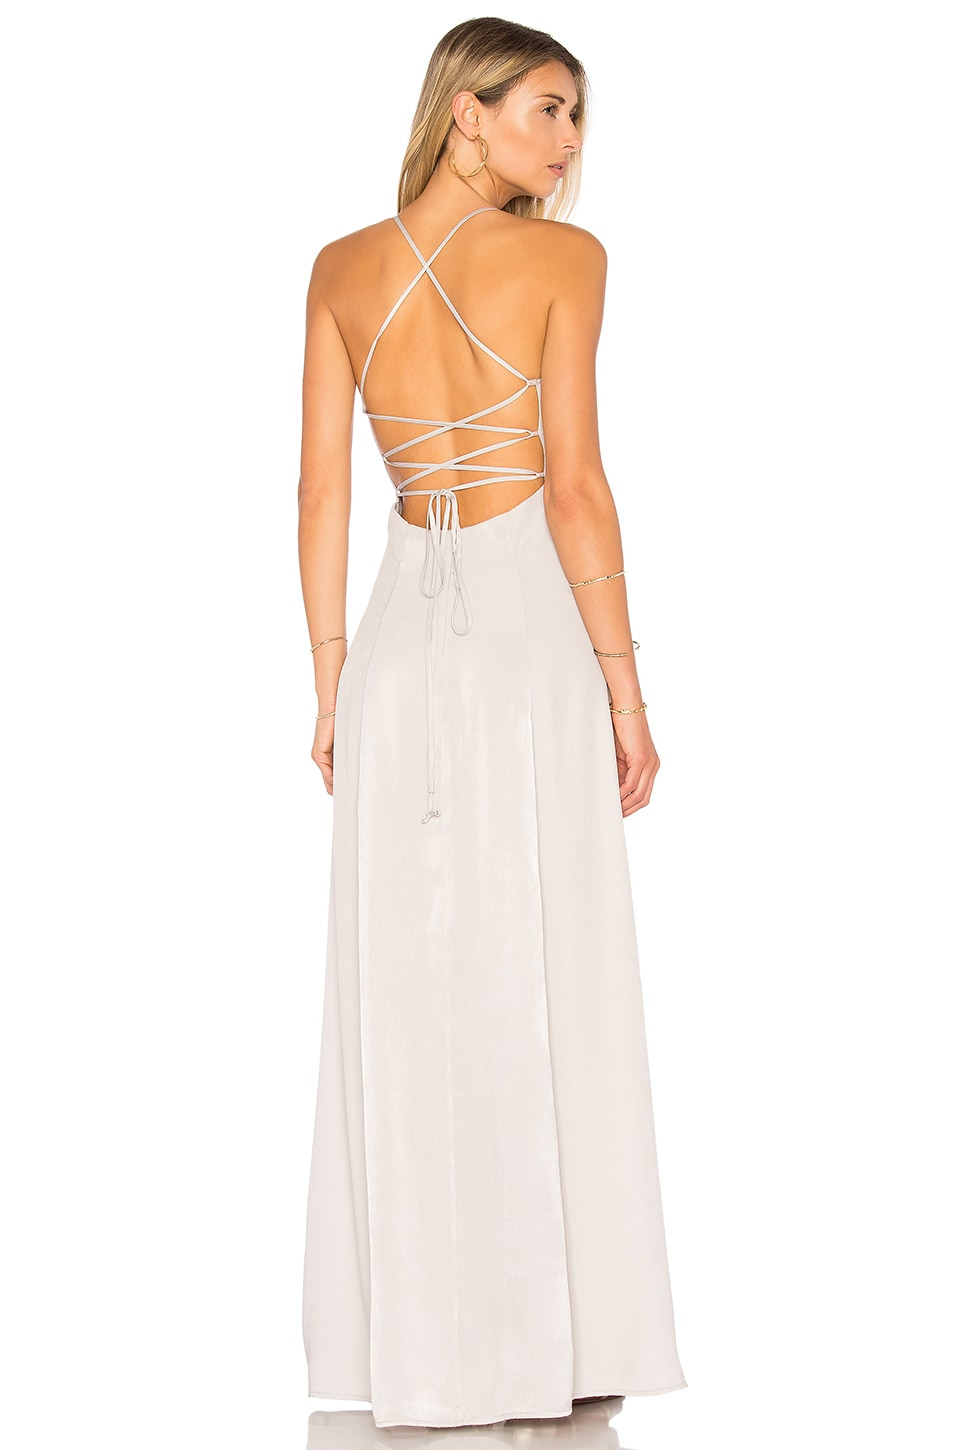 House of Harlow 1960 x REVOLVE Heidi Maxi in Silver